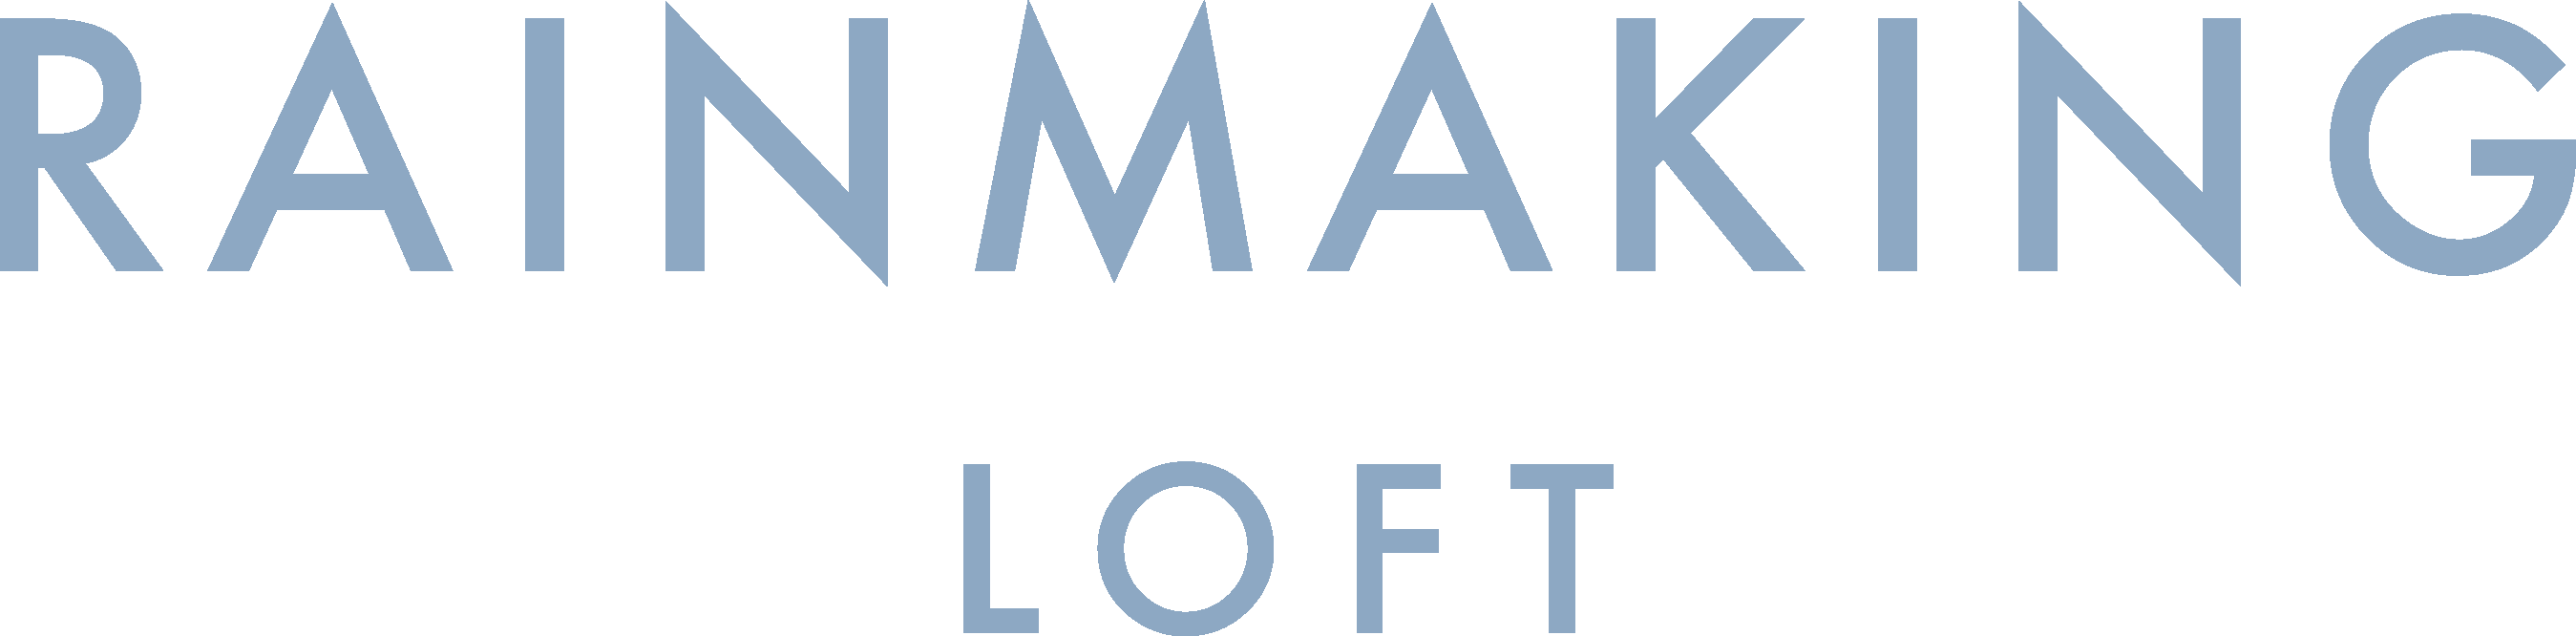 rainmaking_loft - Logo (1) copy.png